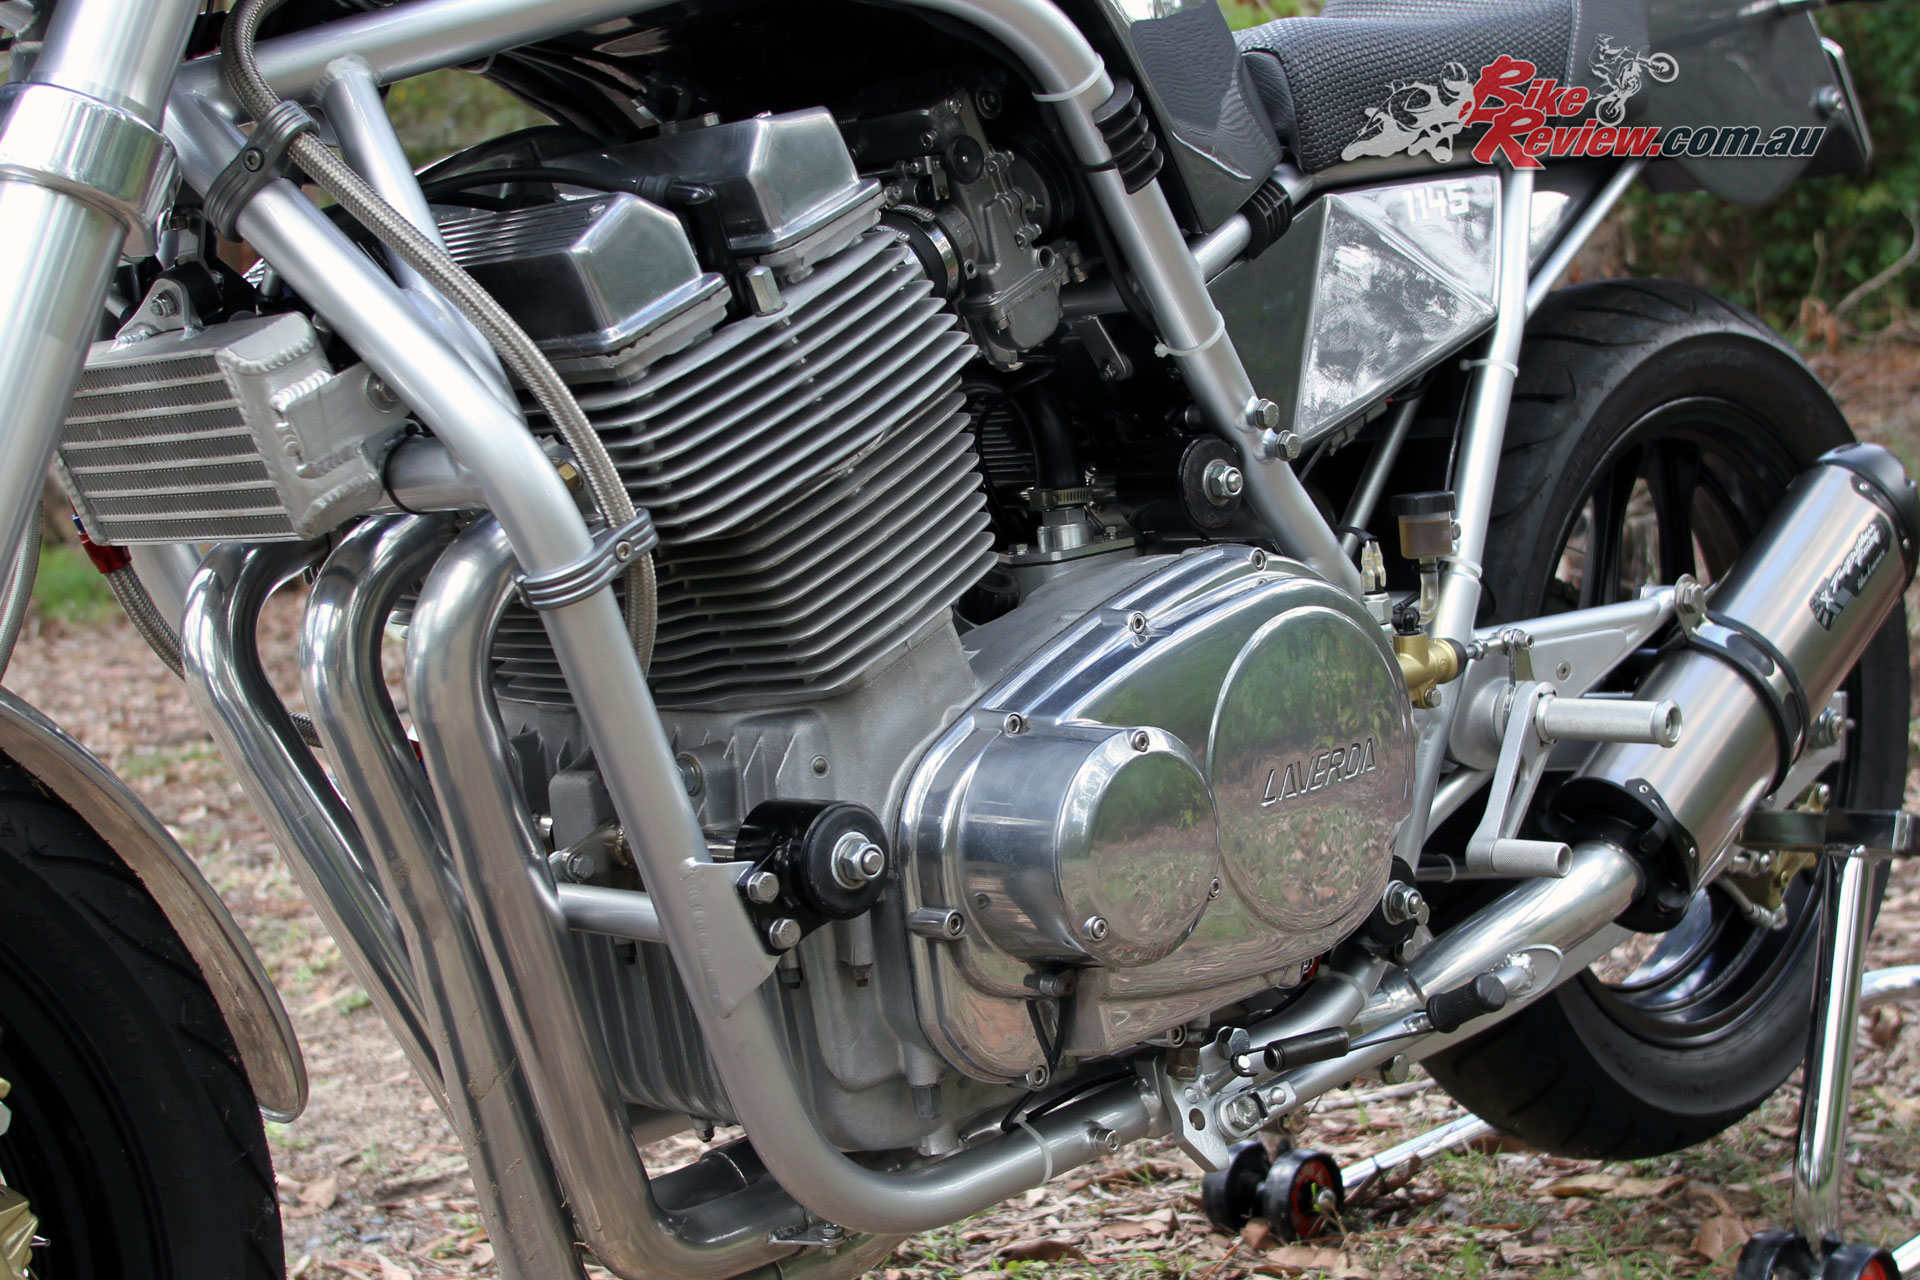 Having received the full Redax Laverda treatment the 1200 triple was putting out a modest 100hp during testing, before being tuned for full performance after run-in